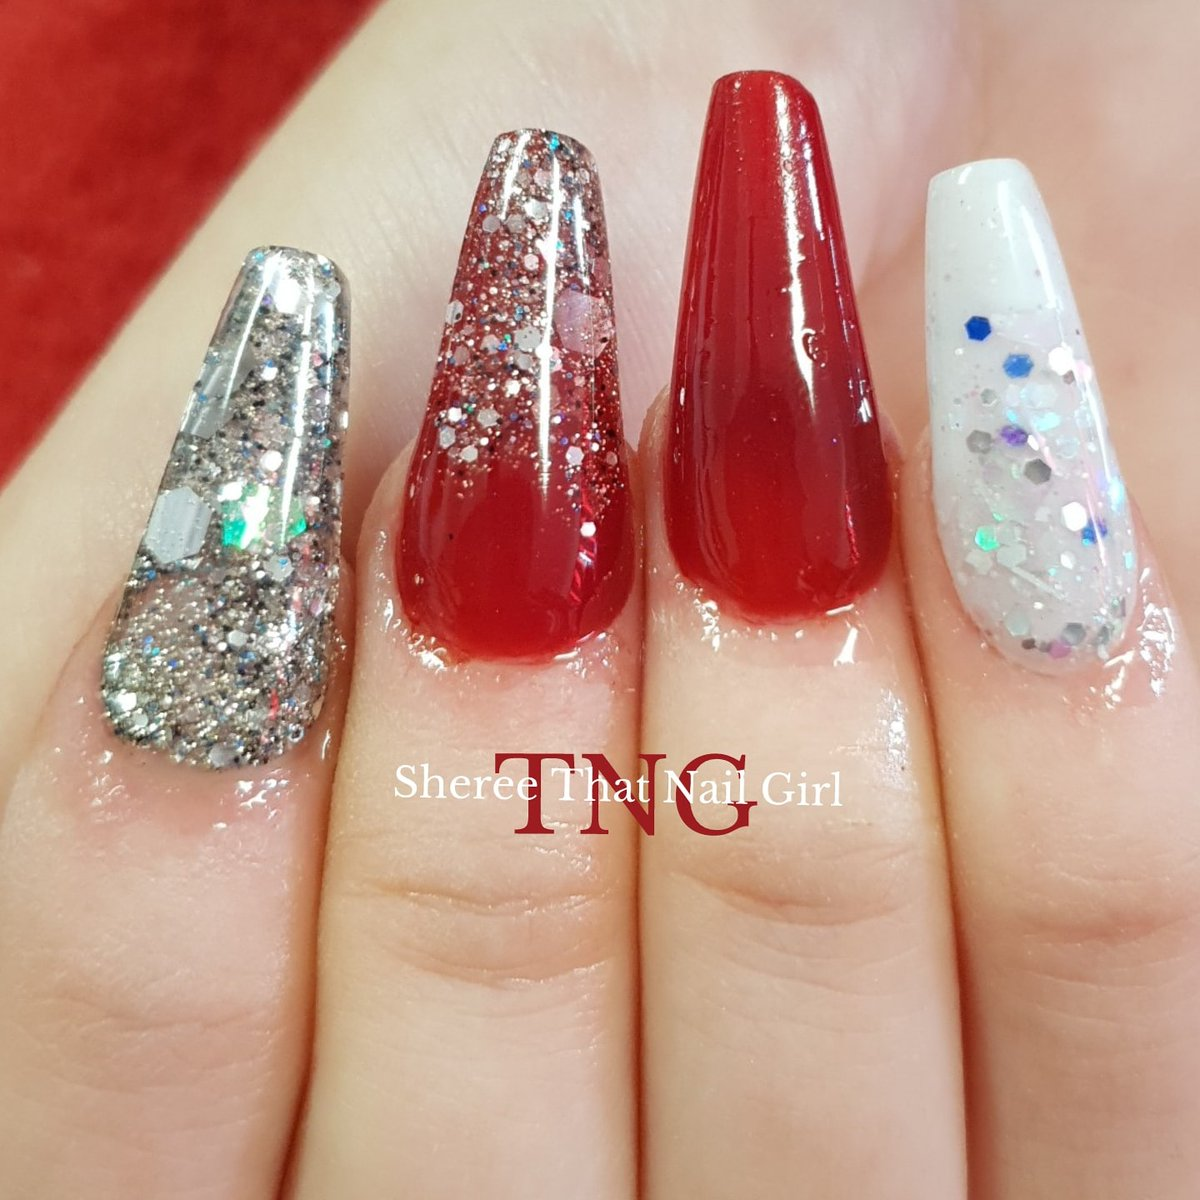 We cant always be perfect, but our nails can   Products from @inklondon @bluesky_global @blueskyukpro and #thatnailgirl  #acrylicnails #sculptednails #glitternails #glitter #red #rednails #coffinnails #thatnailgirlsheree #thatnailgirlstage2 #nailsindoncaster #doncasternailspic.twitter.com/sj8BvRo1fH